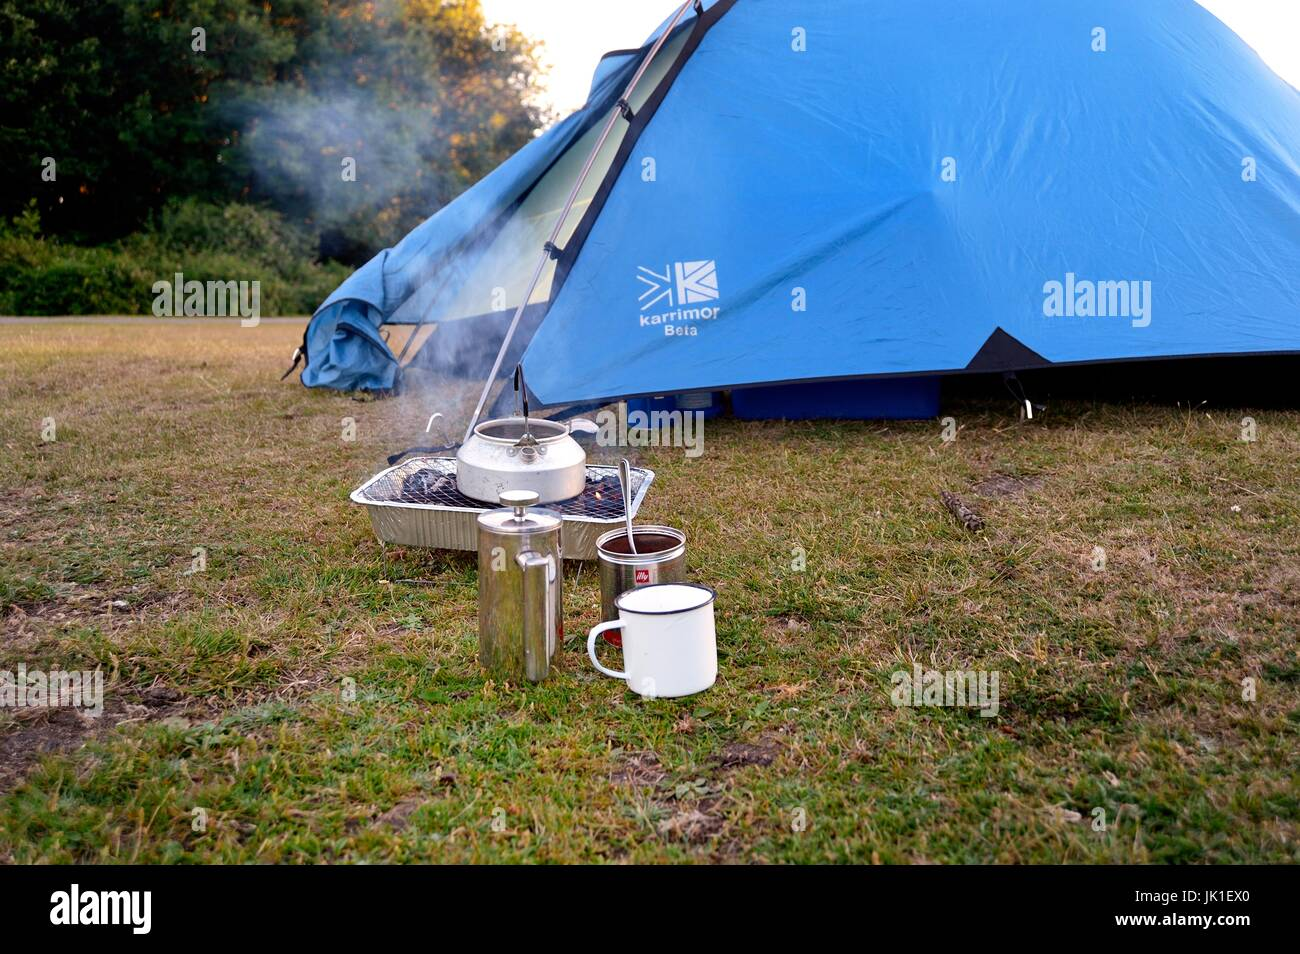 Boiling water on barbeque to make coffee when camping - Stock Image